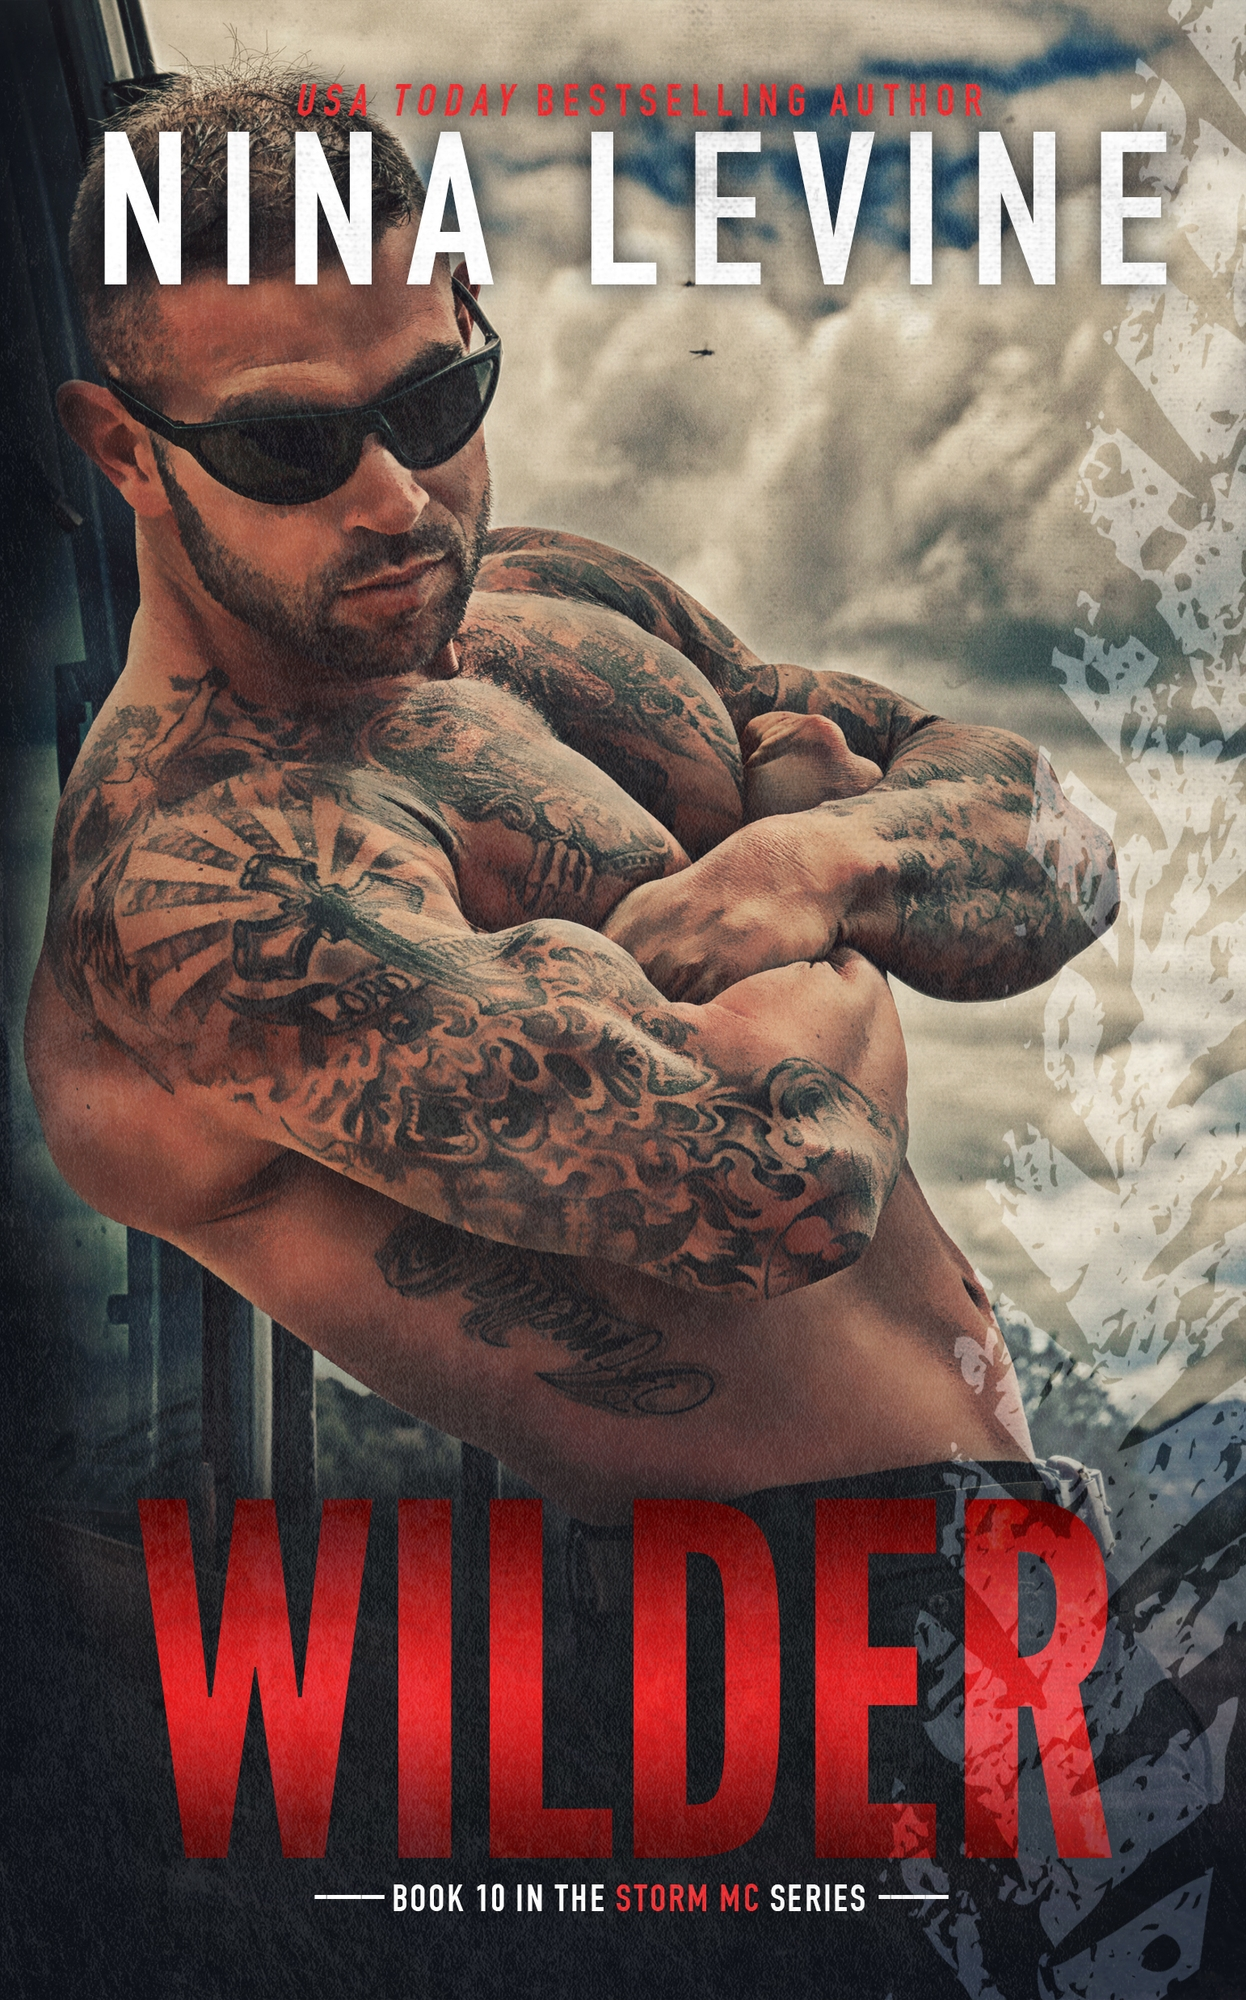 Wilder by Nina Levine - Cover